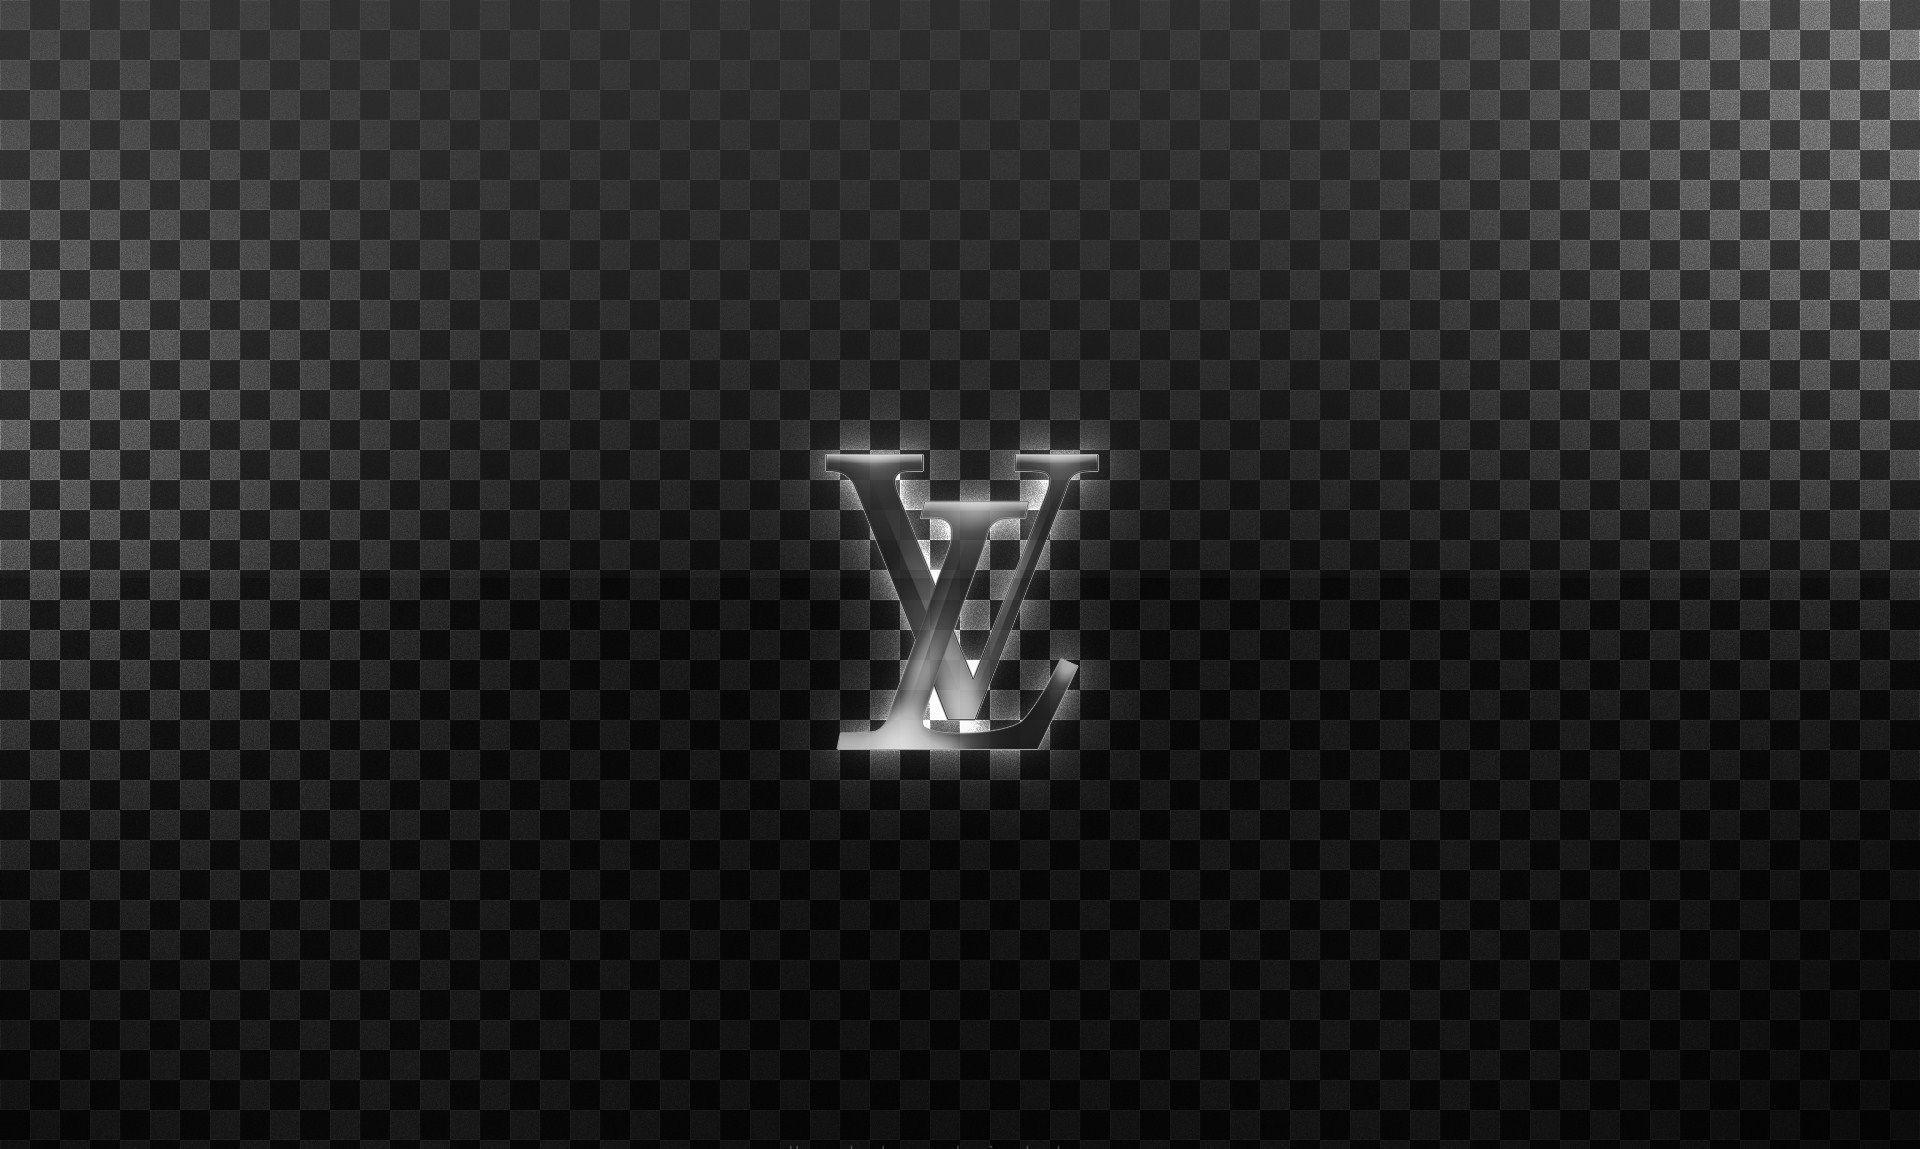 Wallpapers For > Louis Vuitton Wallpapers Men